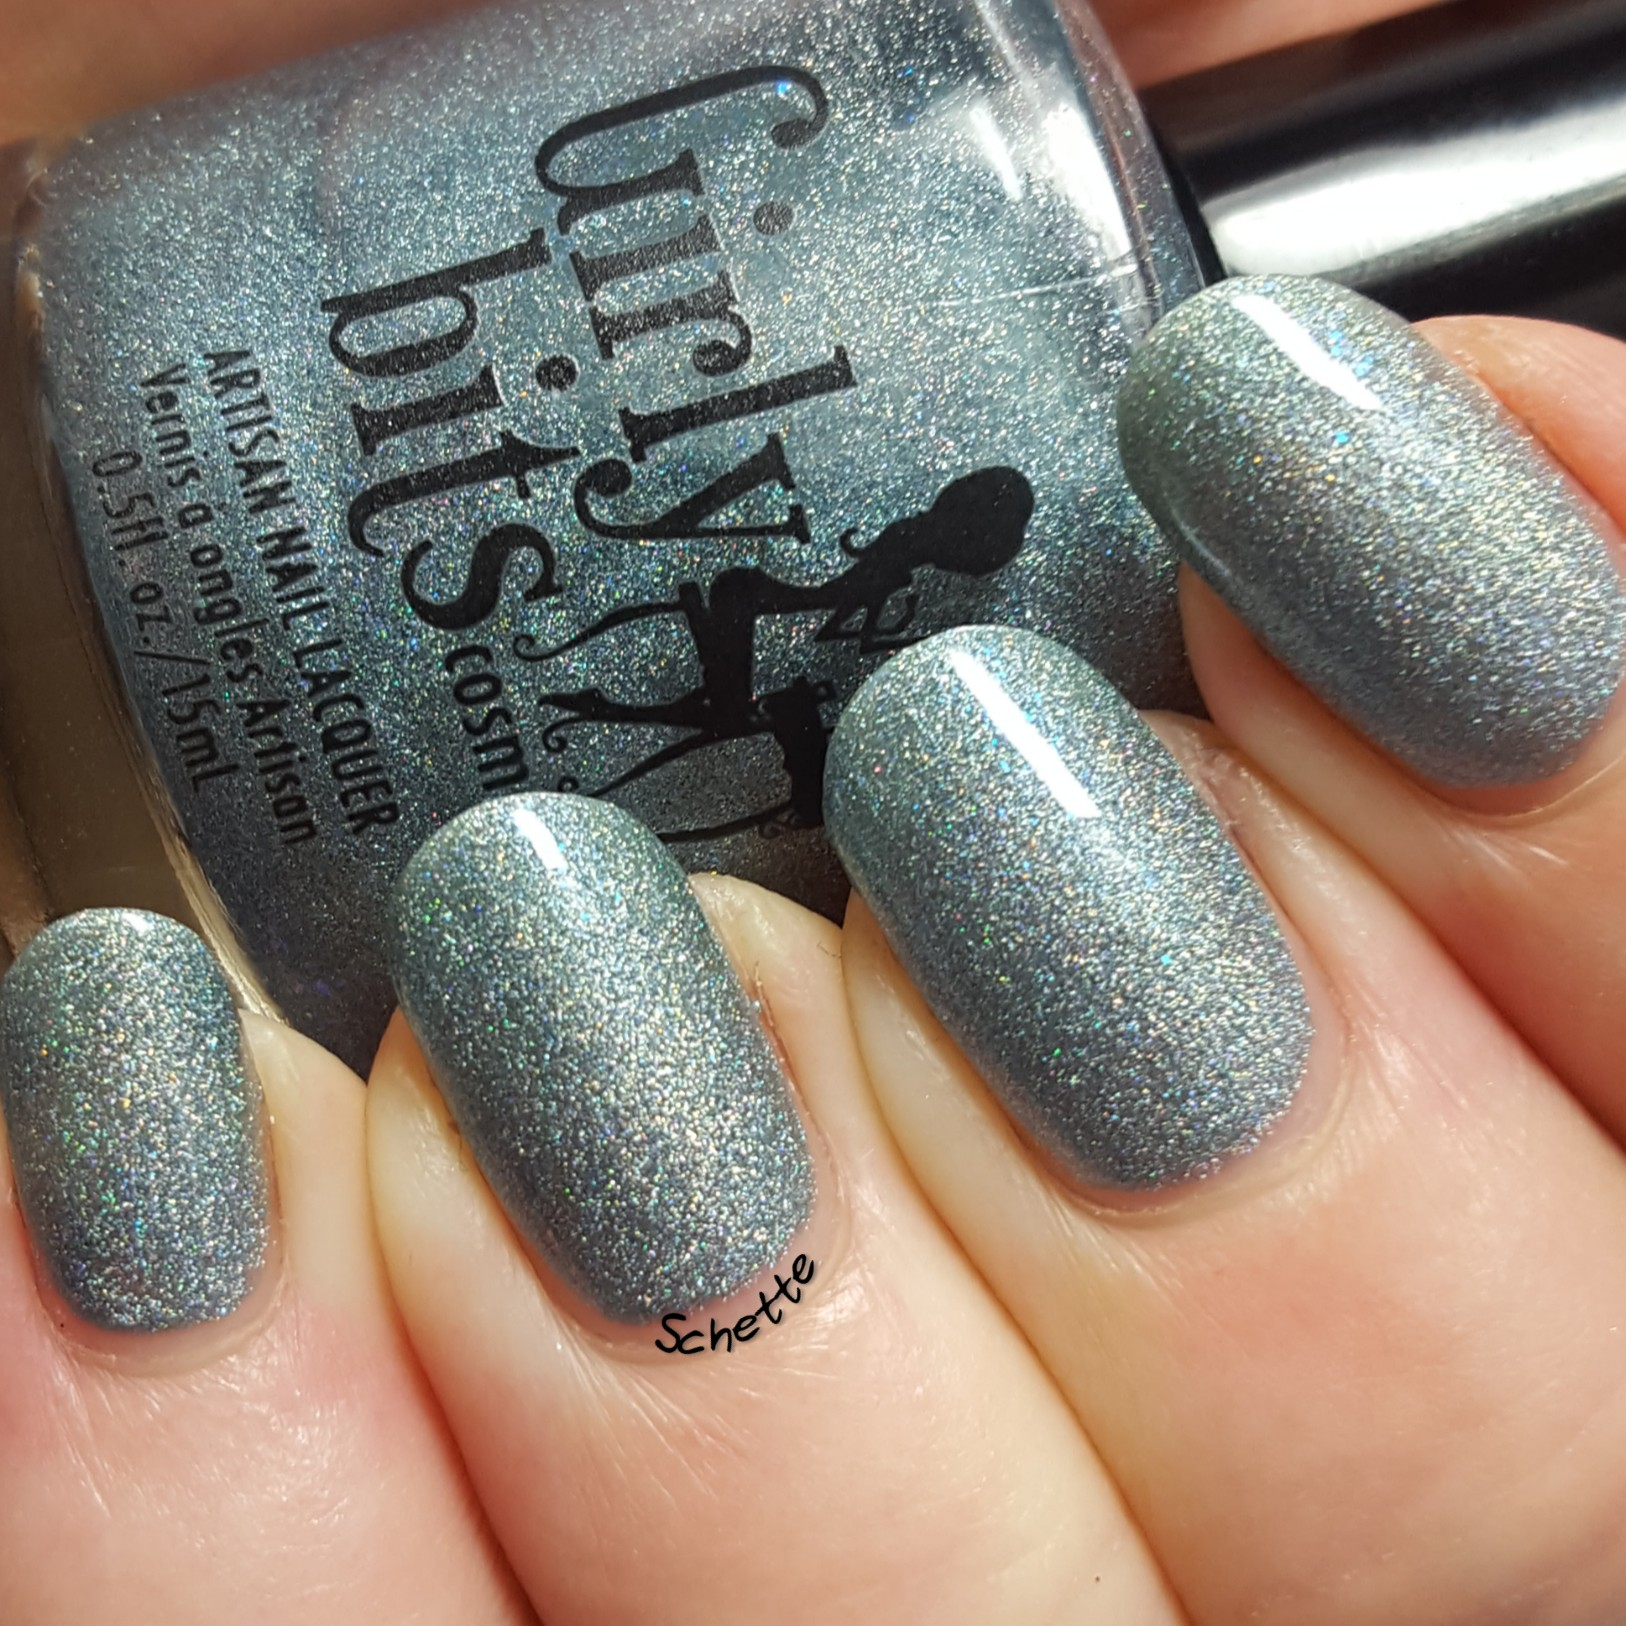 Girly Bits - More Cowbell